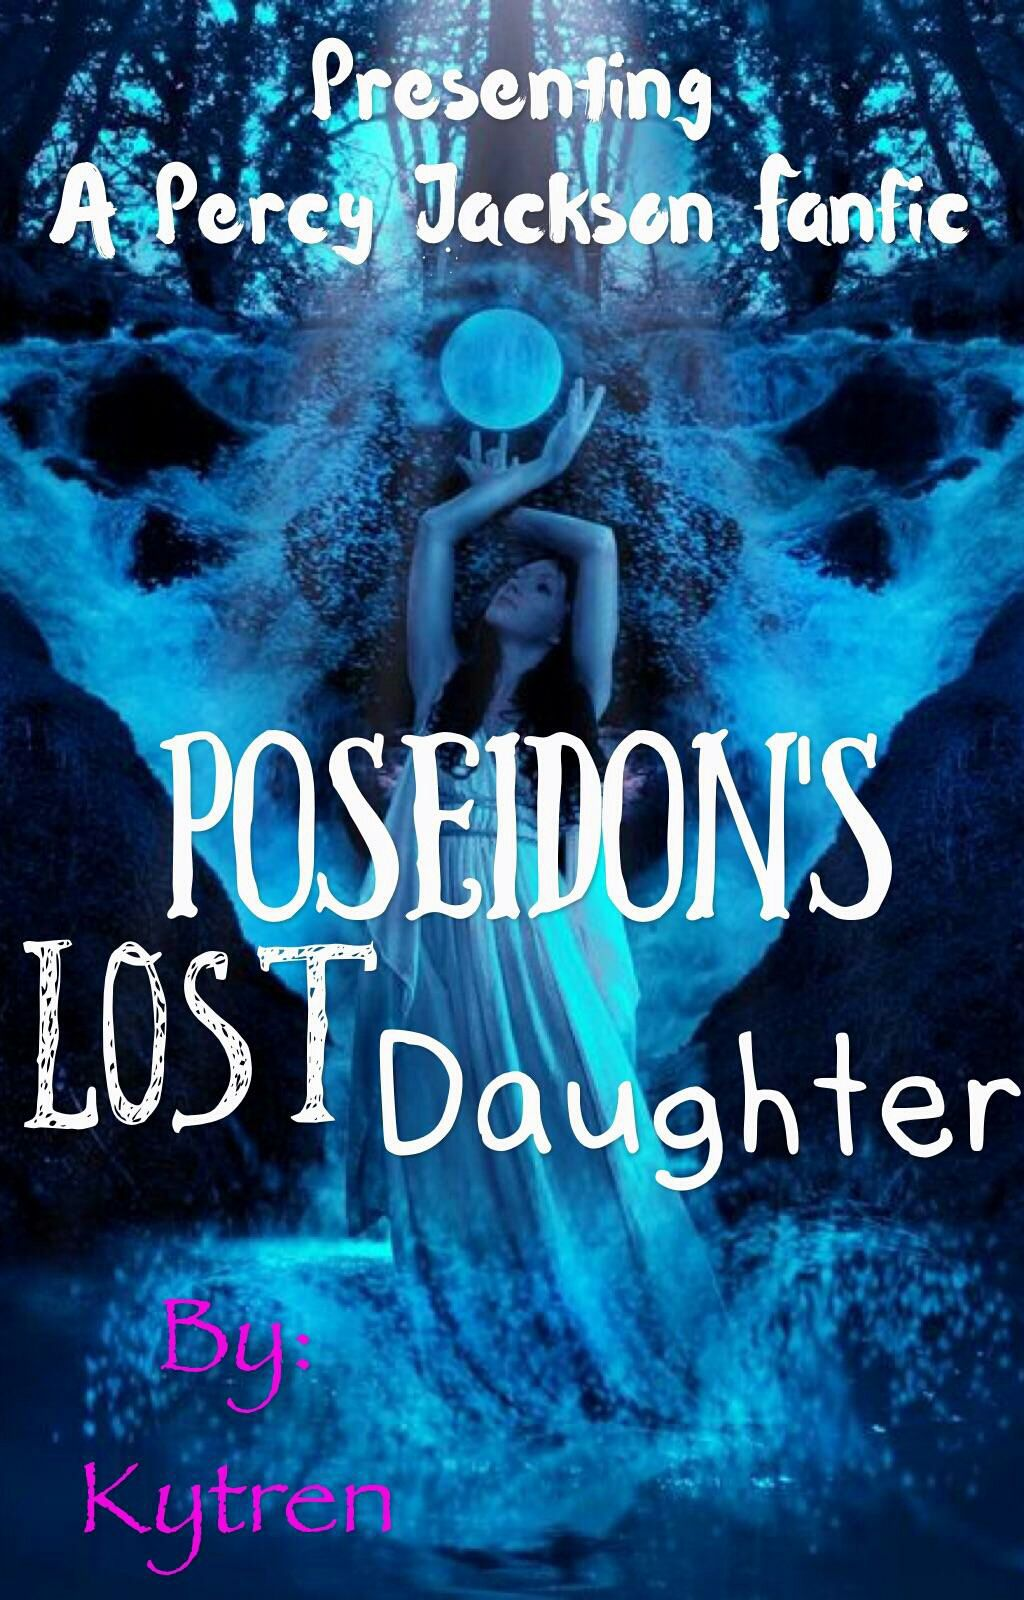 Poseidon's Lost Daughter (Percy Jackson Fanfiction) - Before